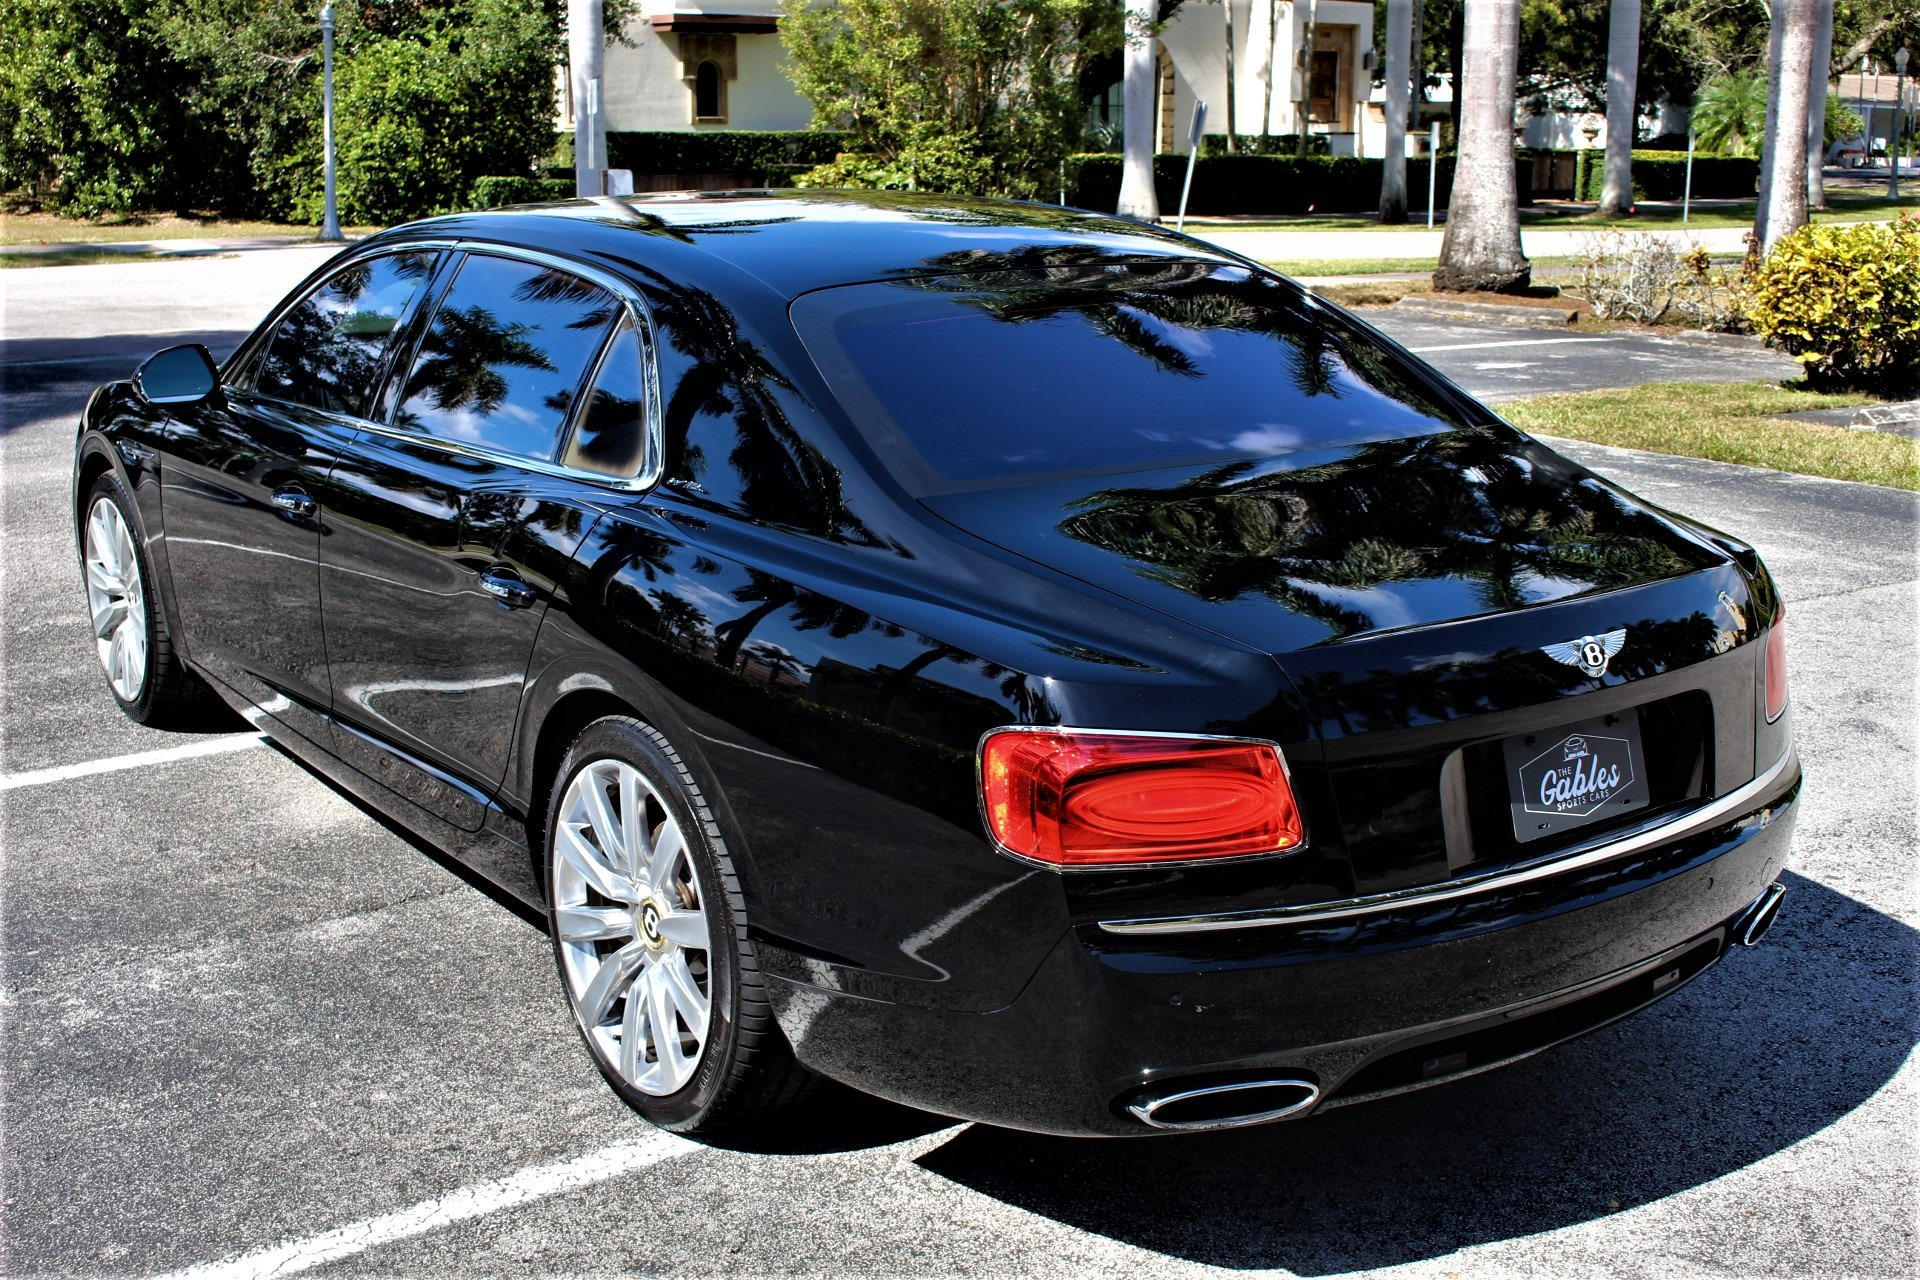 Used 2015 Bentley Flying Spur W12 for sale Sold at The Gables Sports Cars in Miami FL 33146 2